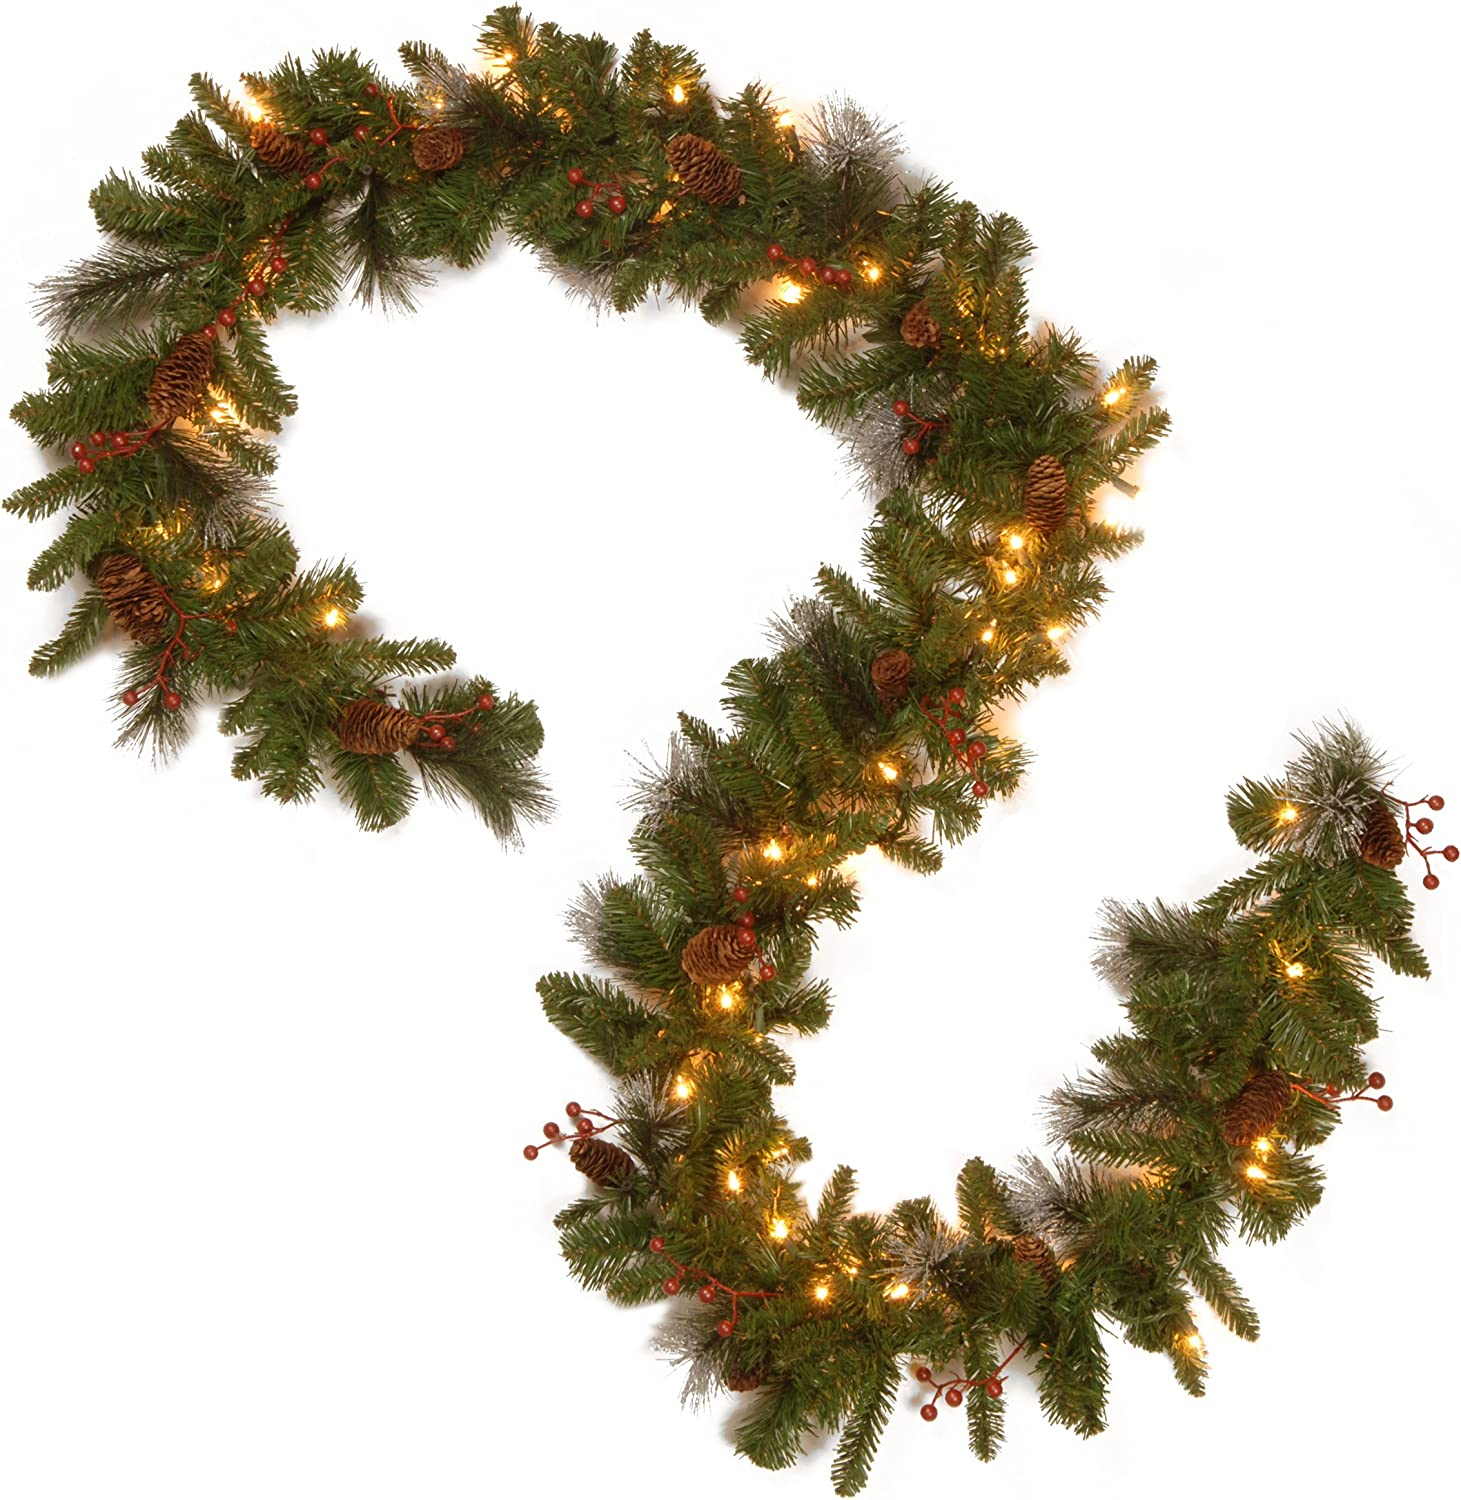 Style06, Details about  /Christmas Garland Party Pine Tree Ribbon Xmas Ornament Decorations